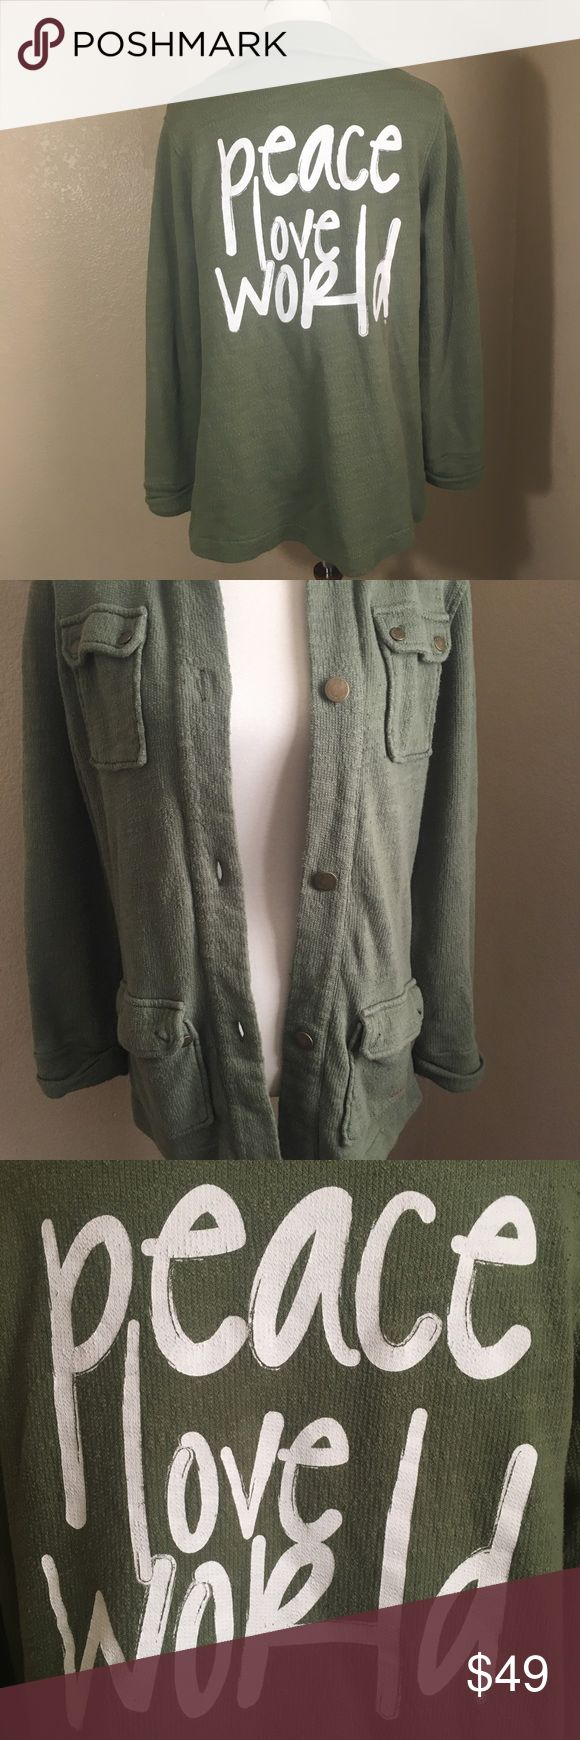 "Peace Love World Army Green Military Jacket Peace Love World Lightweight Military style Jacket with the phrase ""Peace Love World"" on back. Size small. Gently used l, great condition. No fading on the words. Jacket buttons up and has pockets. Peace Love World Jackets & Coats"